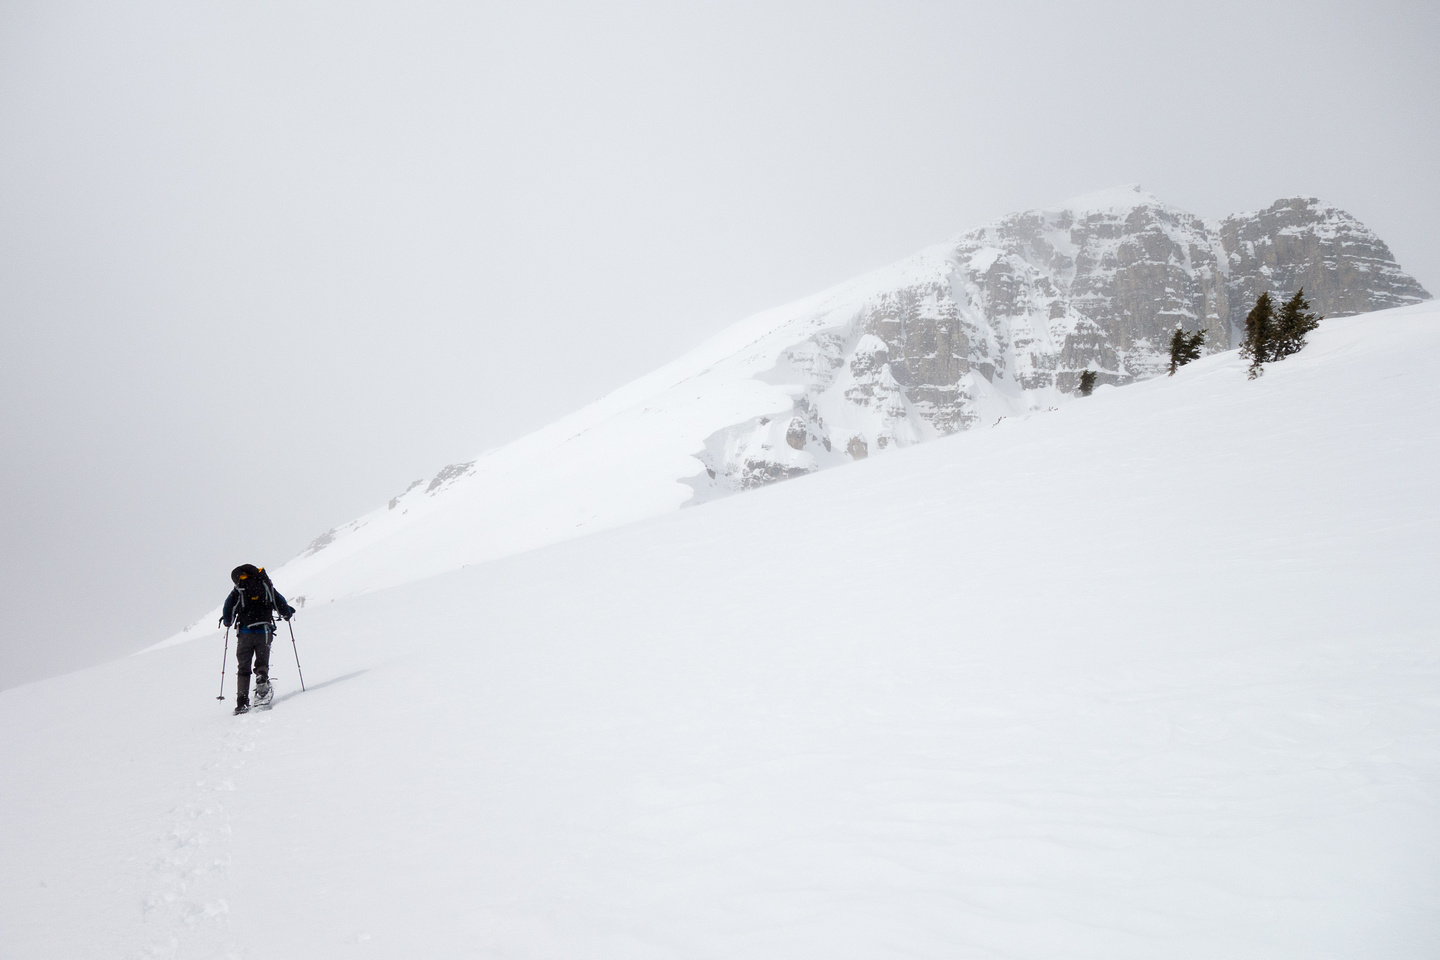 A grey, blustery day about tree line, but the slope ahead leads all the way to the summit so we're getting close.